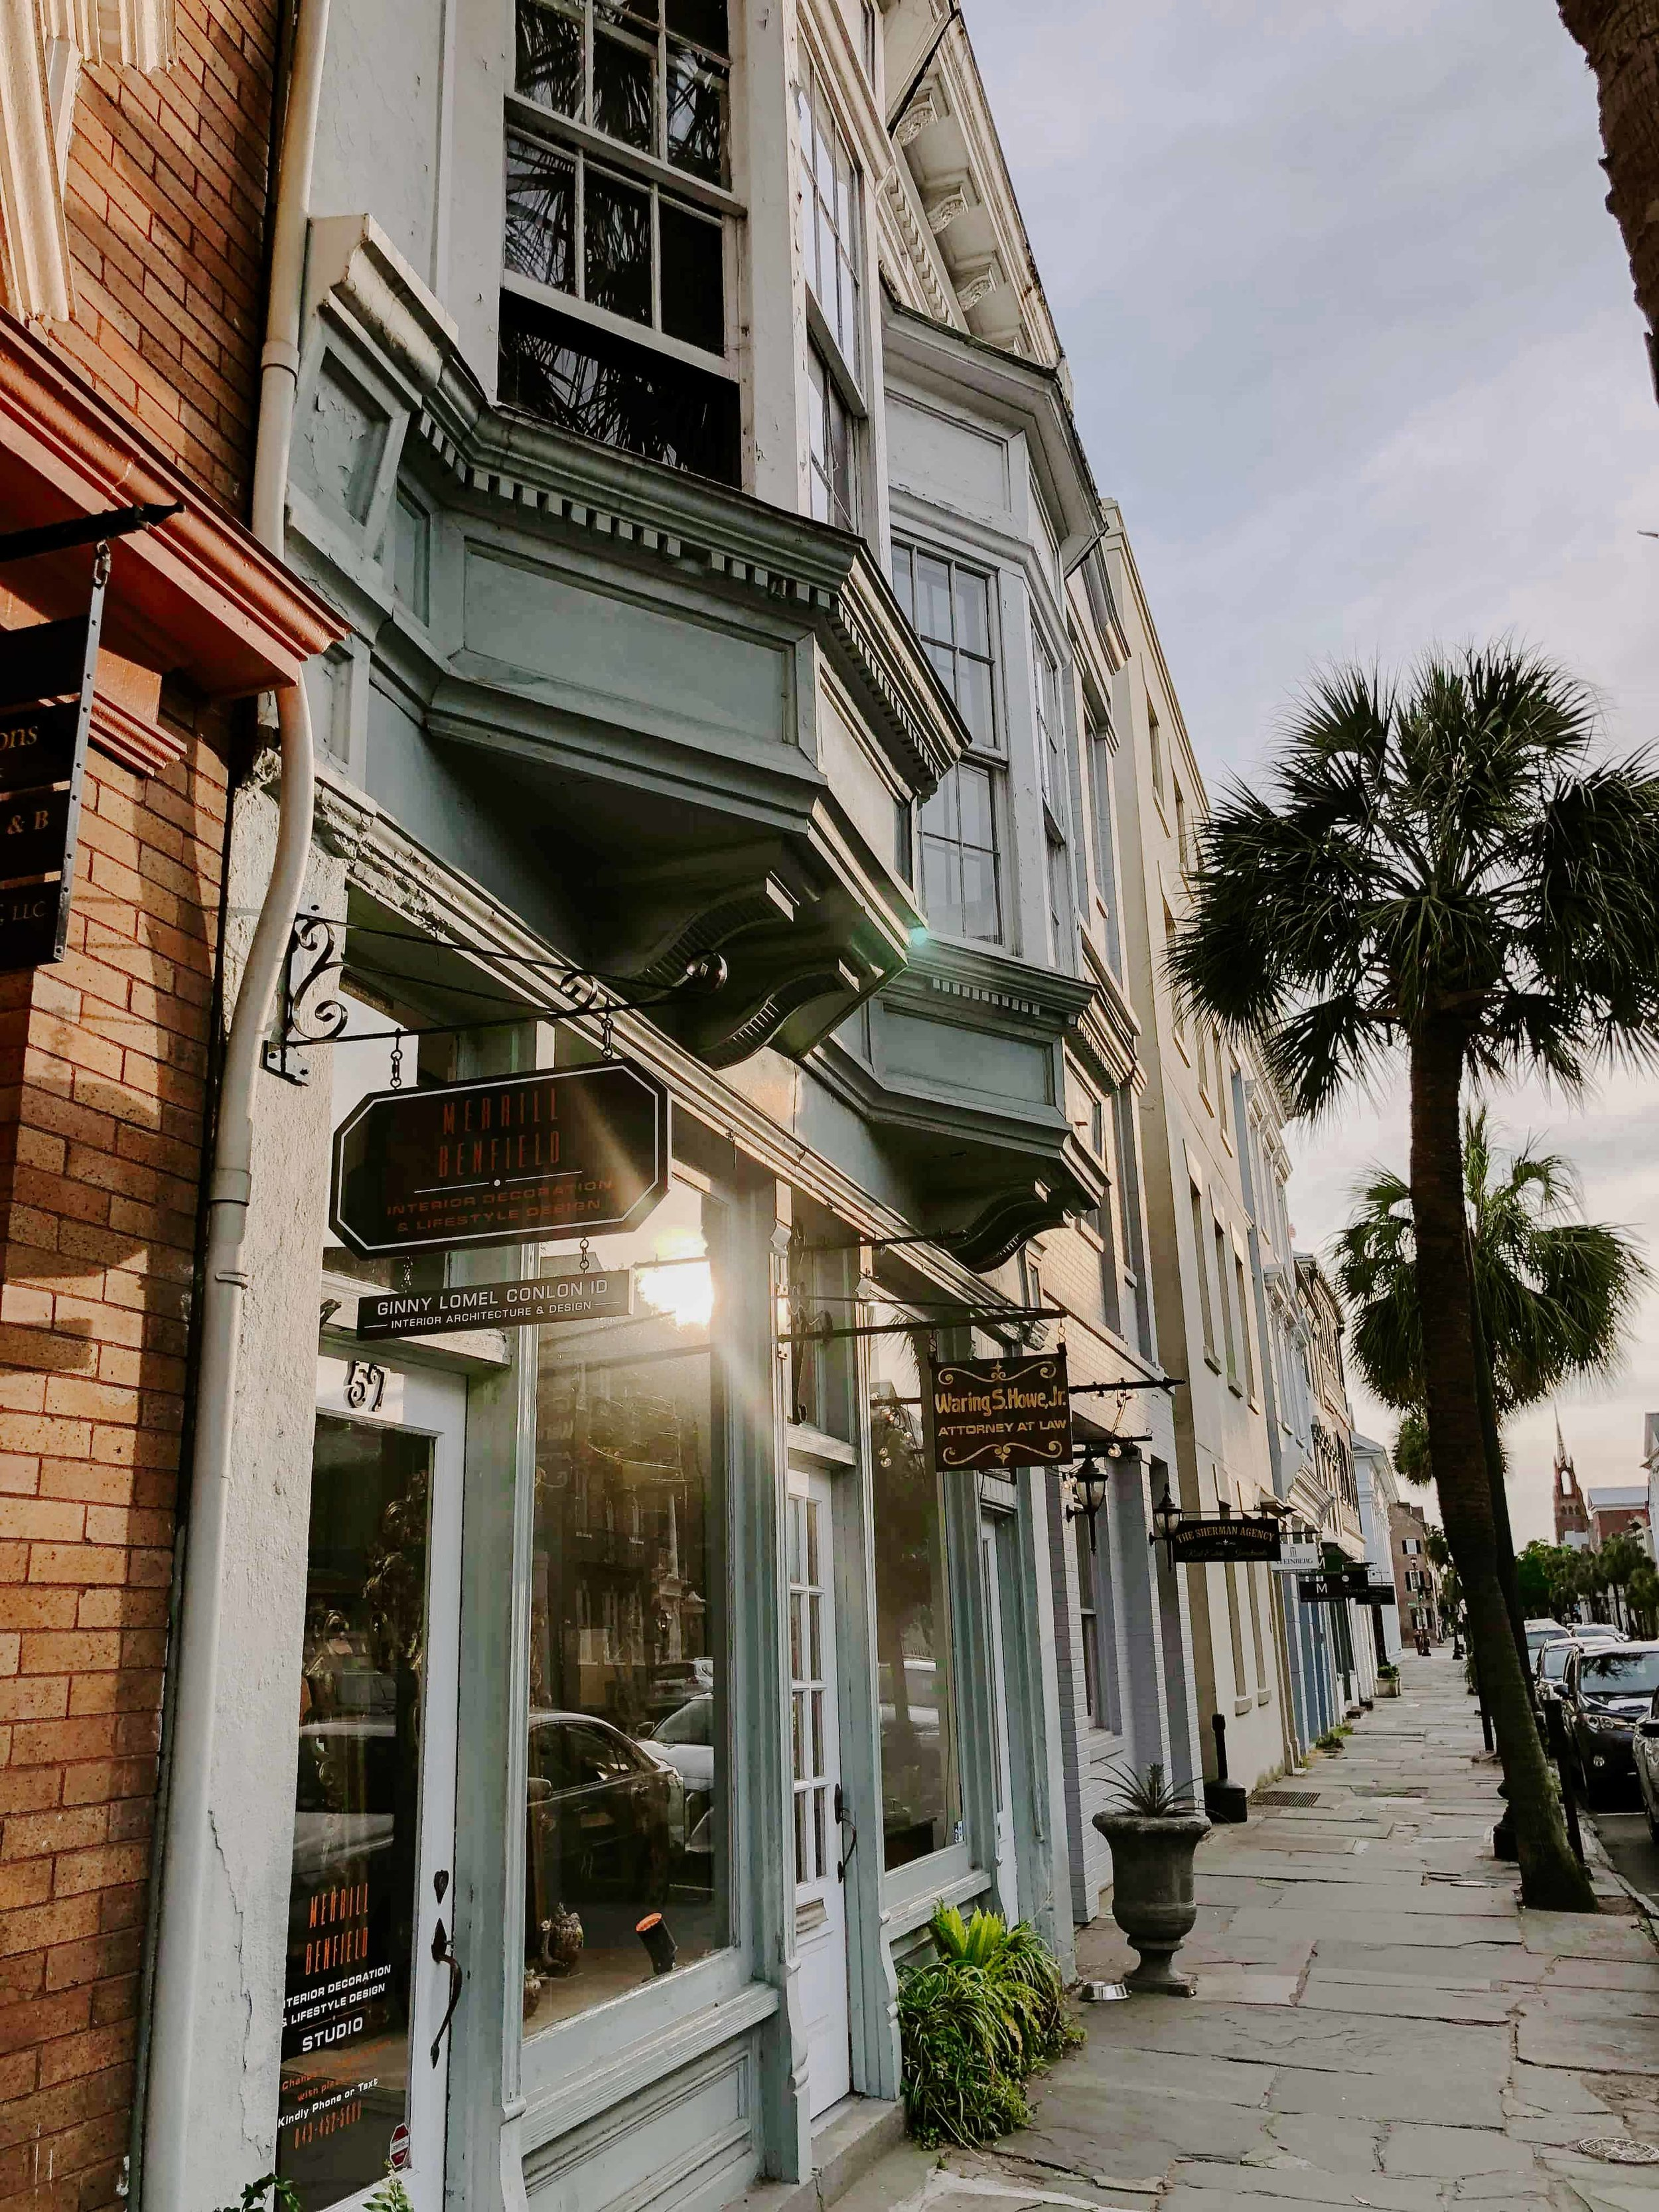 charleston-sc-city-guide-what-to-do-and-see-8.jpg